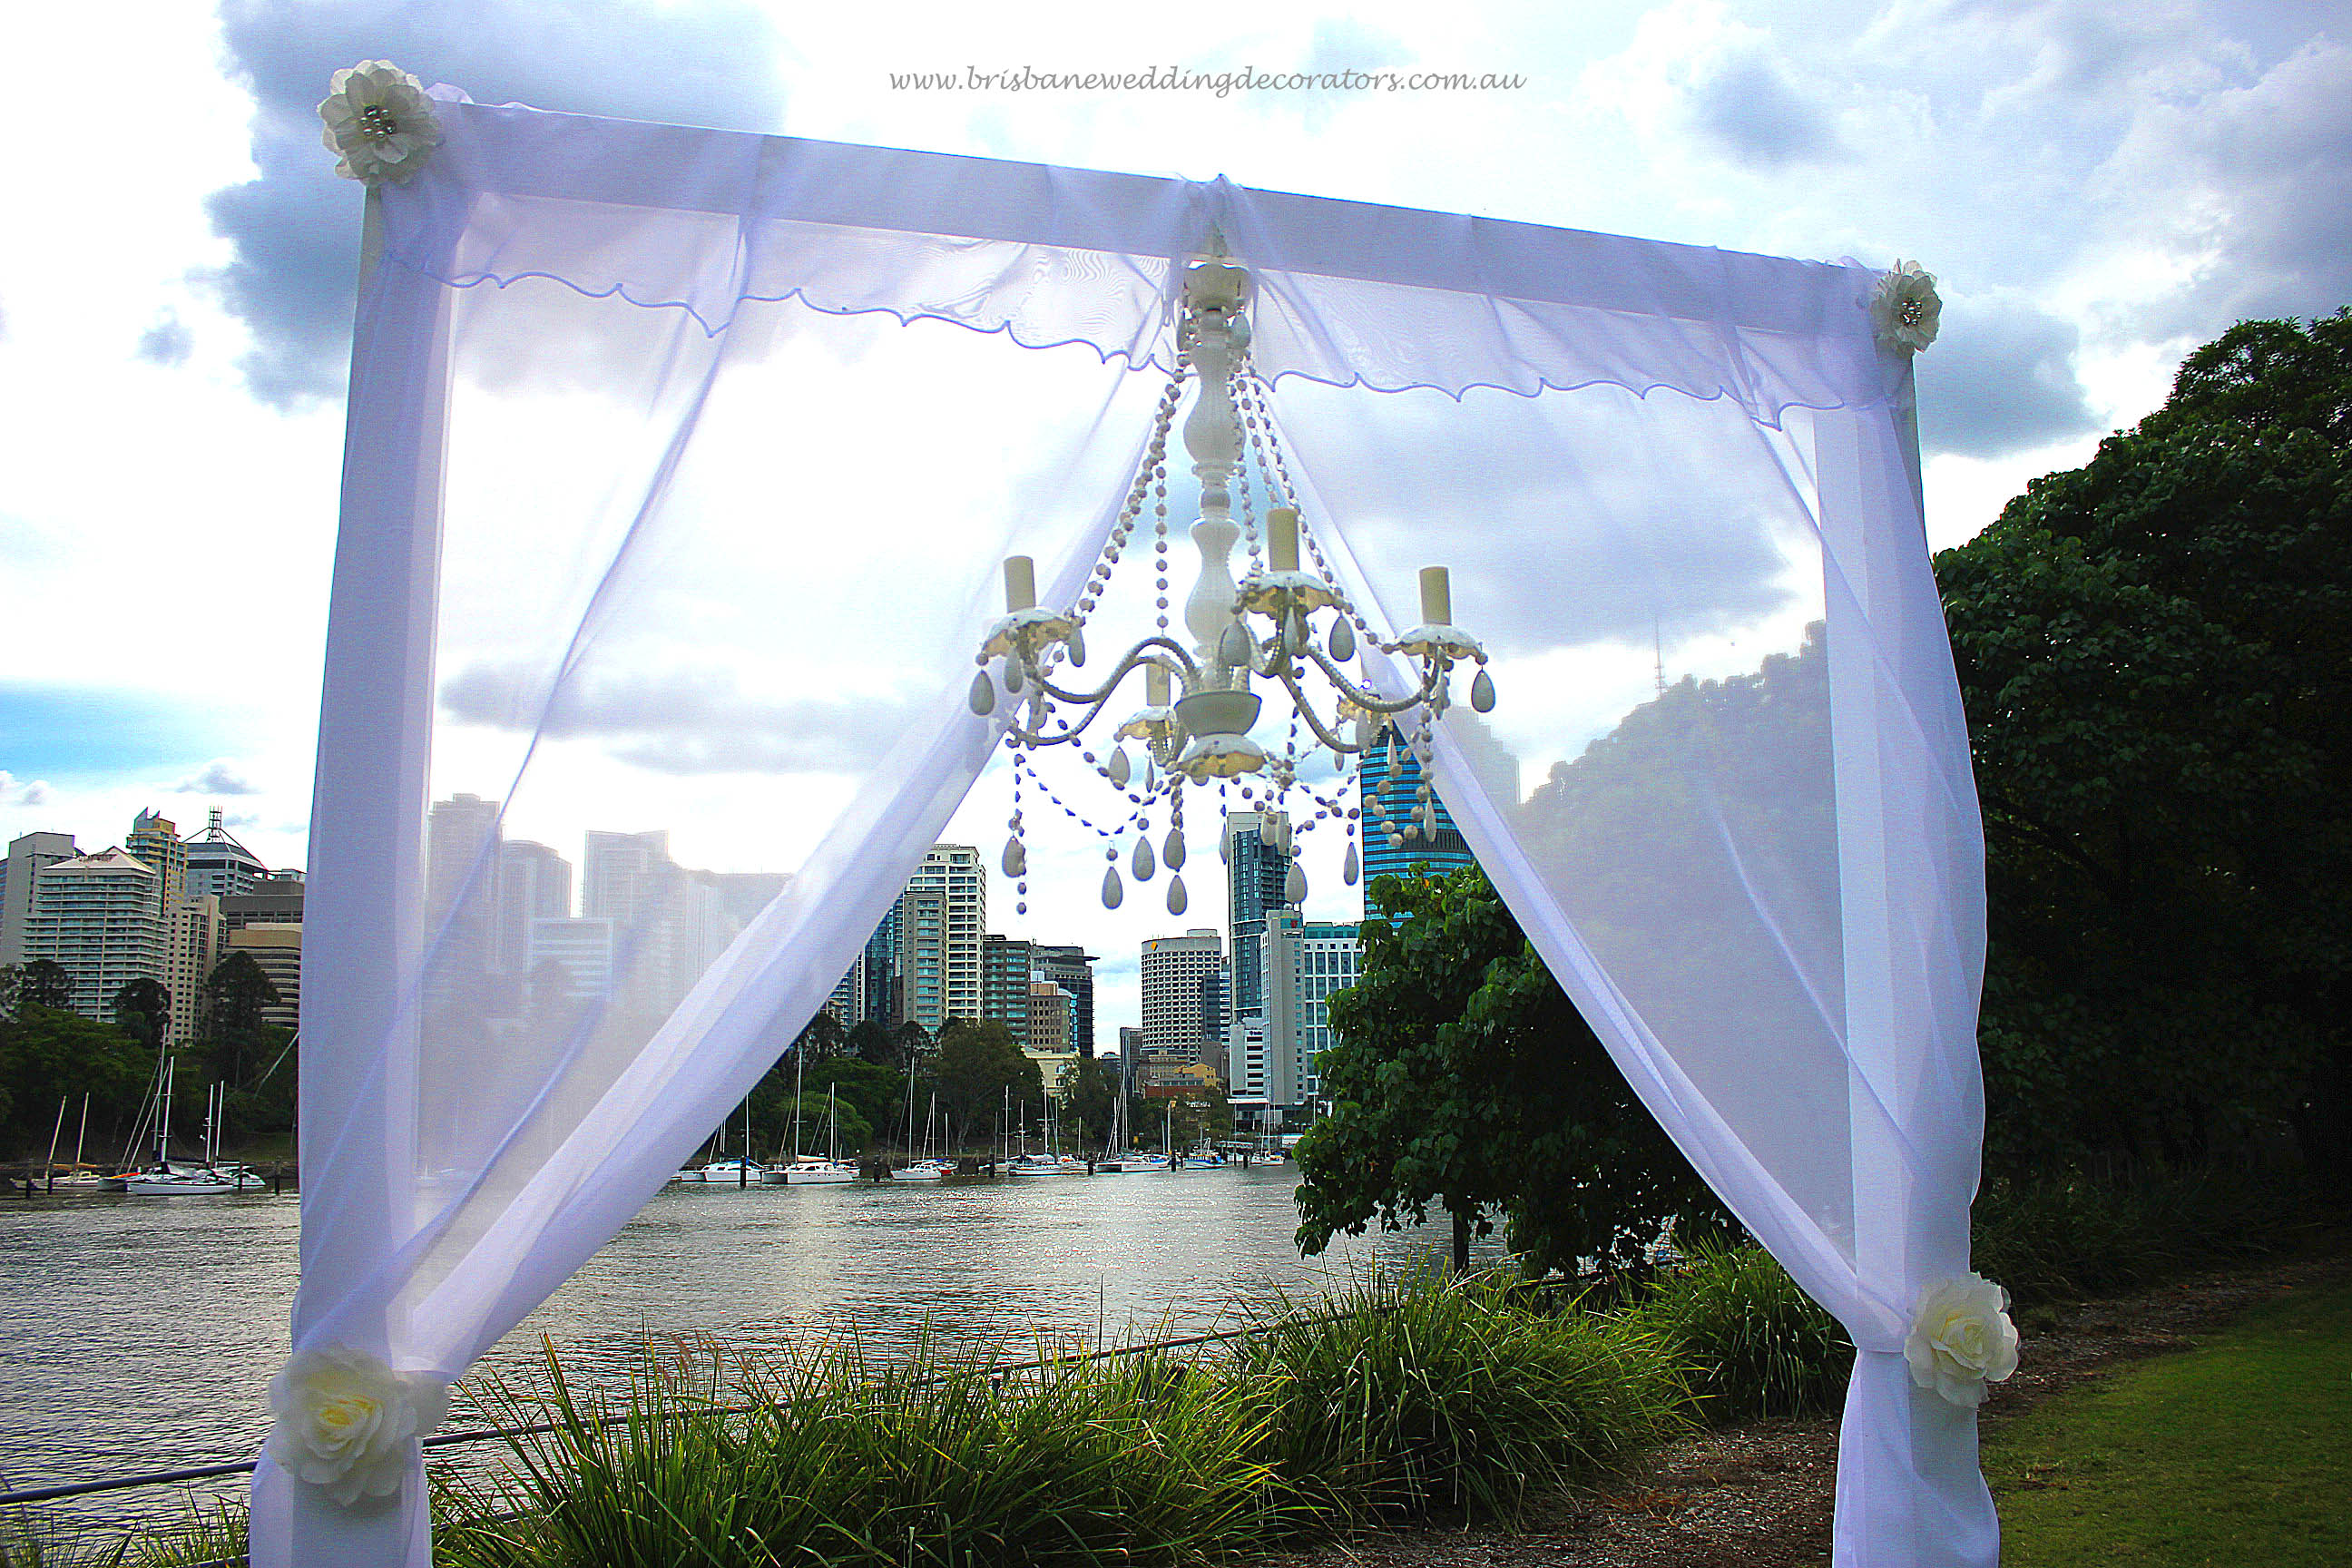 Brisbane Wedding Decorators Elegant Arch And Signature Chandelier Made The Perfect Backdrop For This